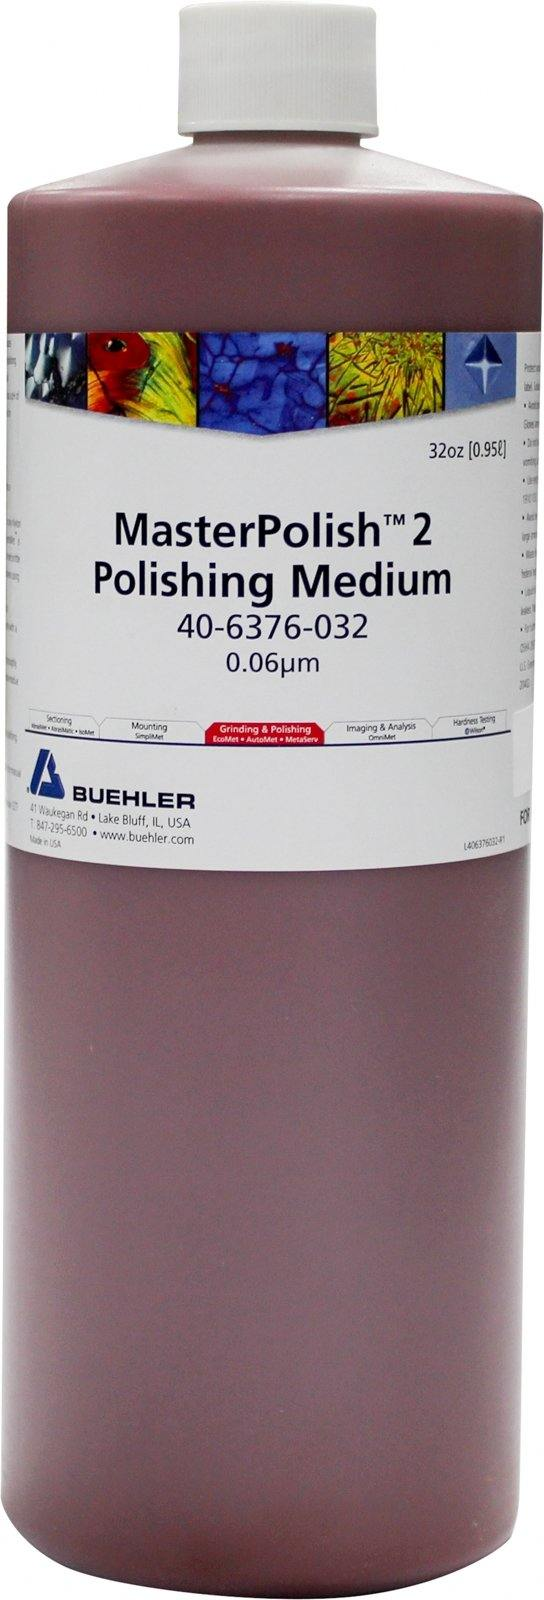 MasterPolish 2 Suspension, 32oz